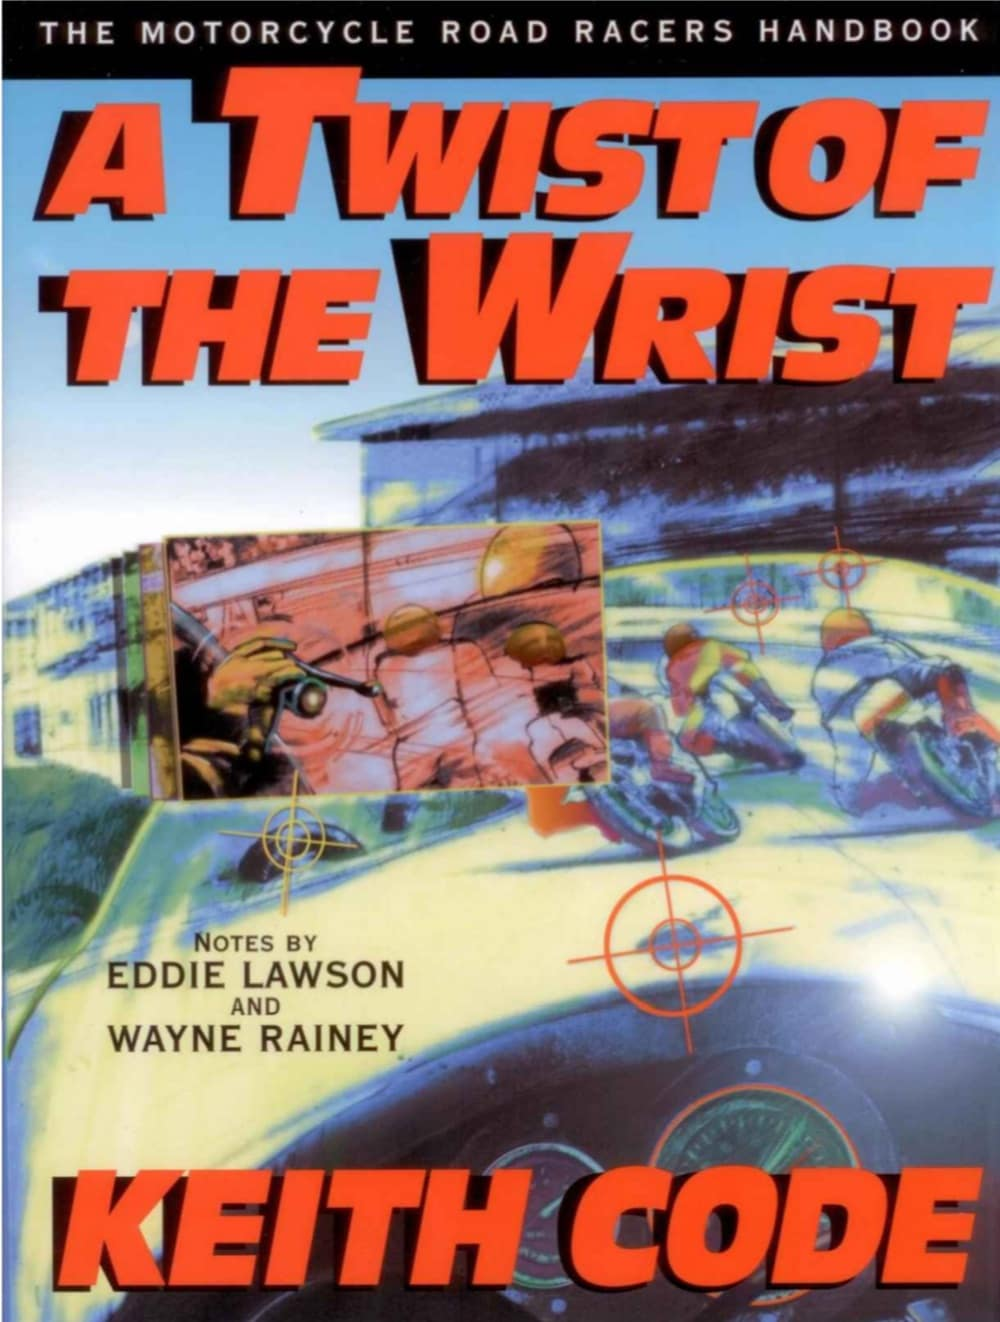 Best motorcycling books - a twist of the wrist by Keith Code